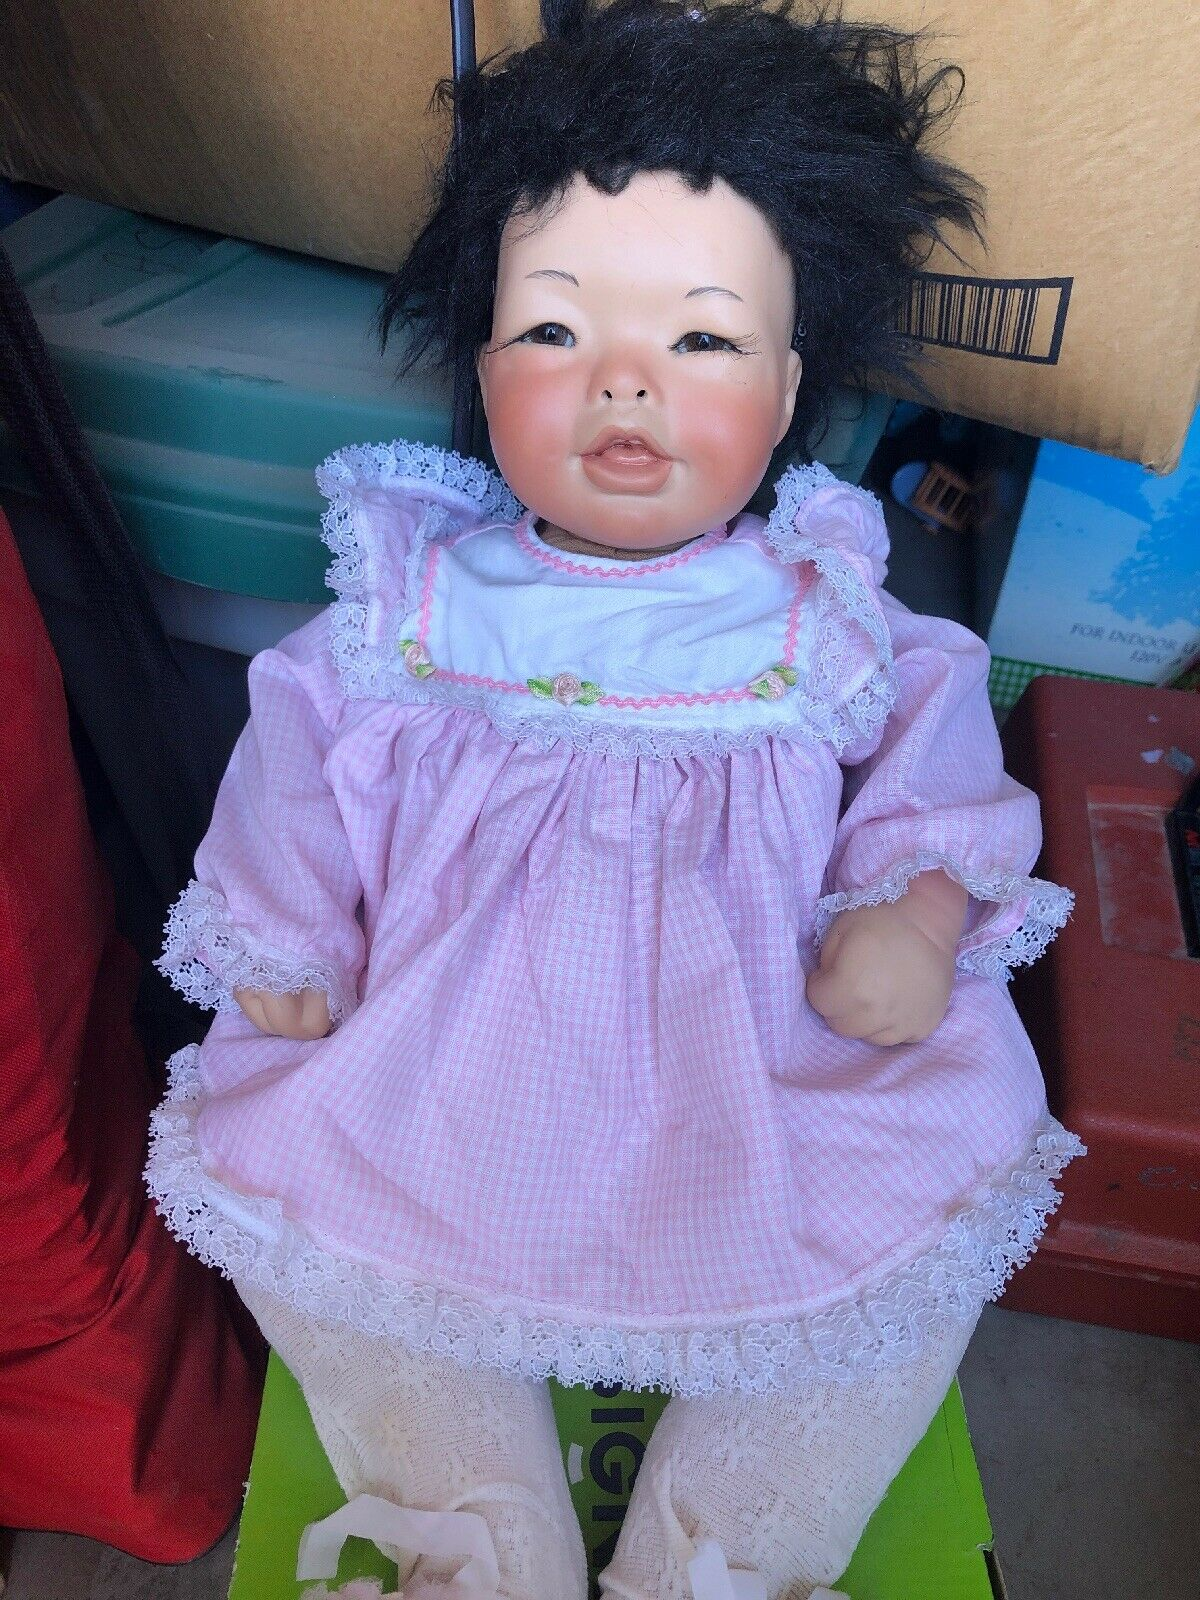 Vintage Collectible Porcelain Doll Asian Baby Doll Original Judith Turner  186